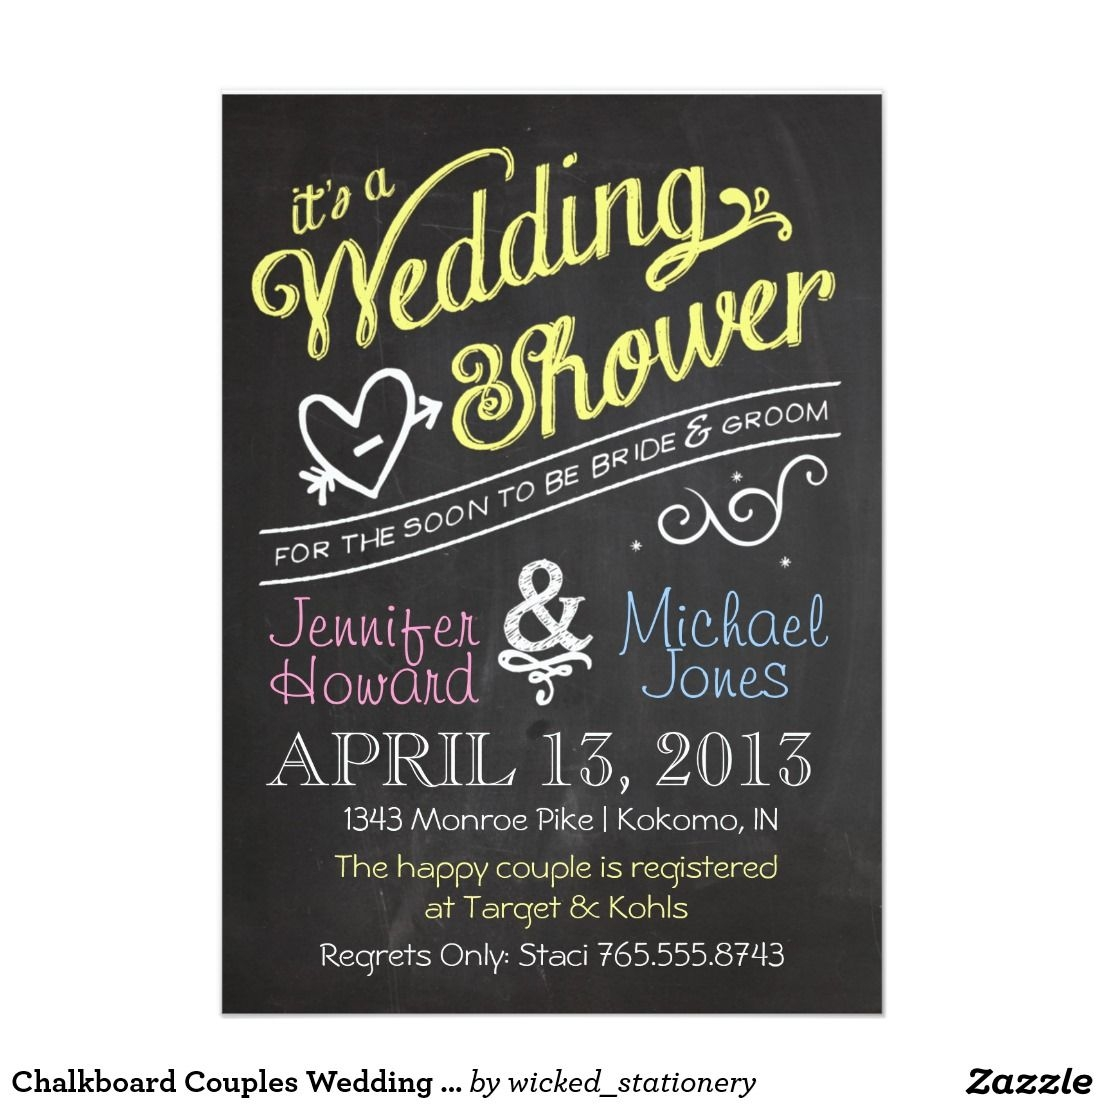 Chalkboard Couples Wedding Shower Invitation Elegant Chalkboard